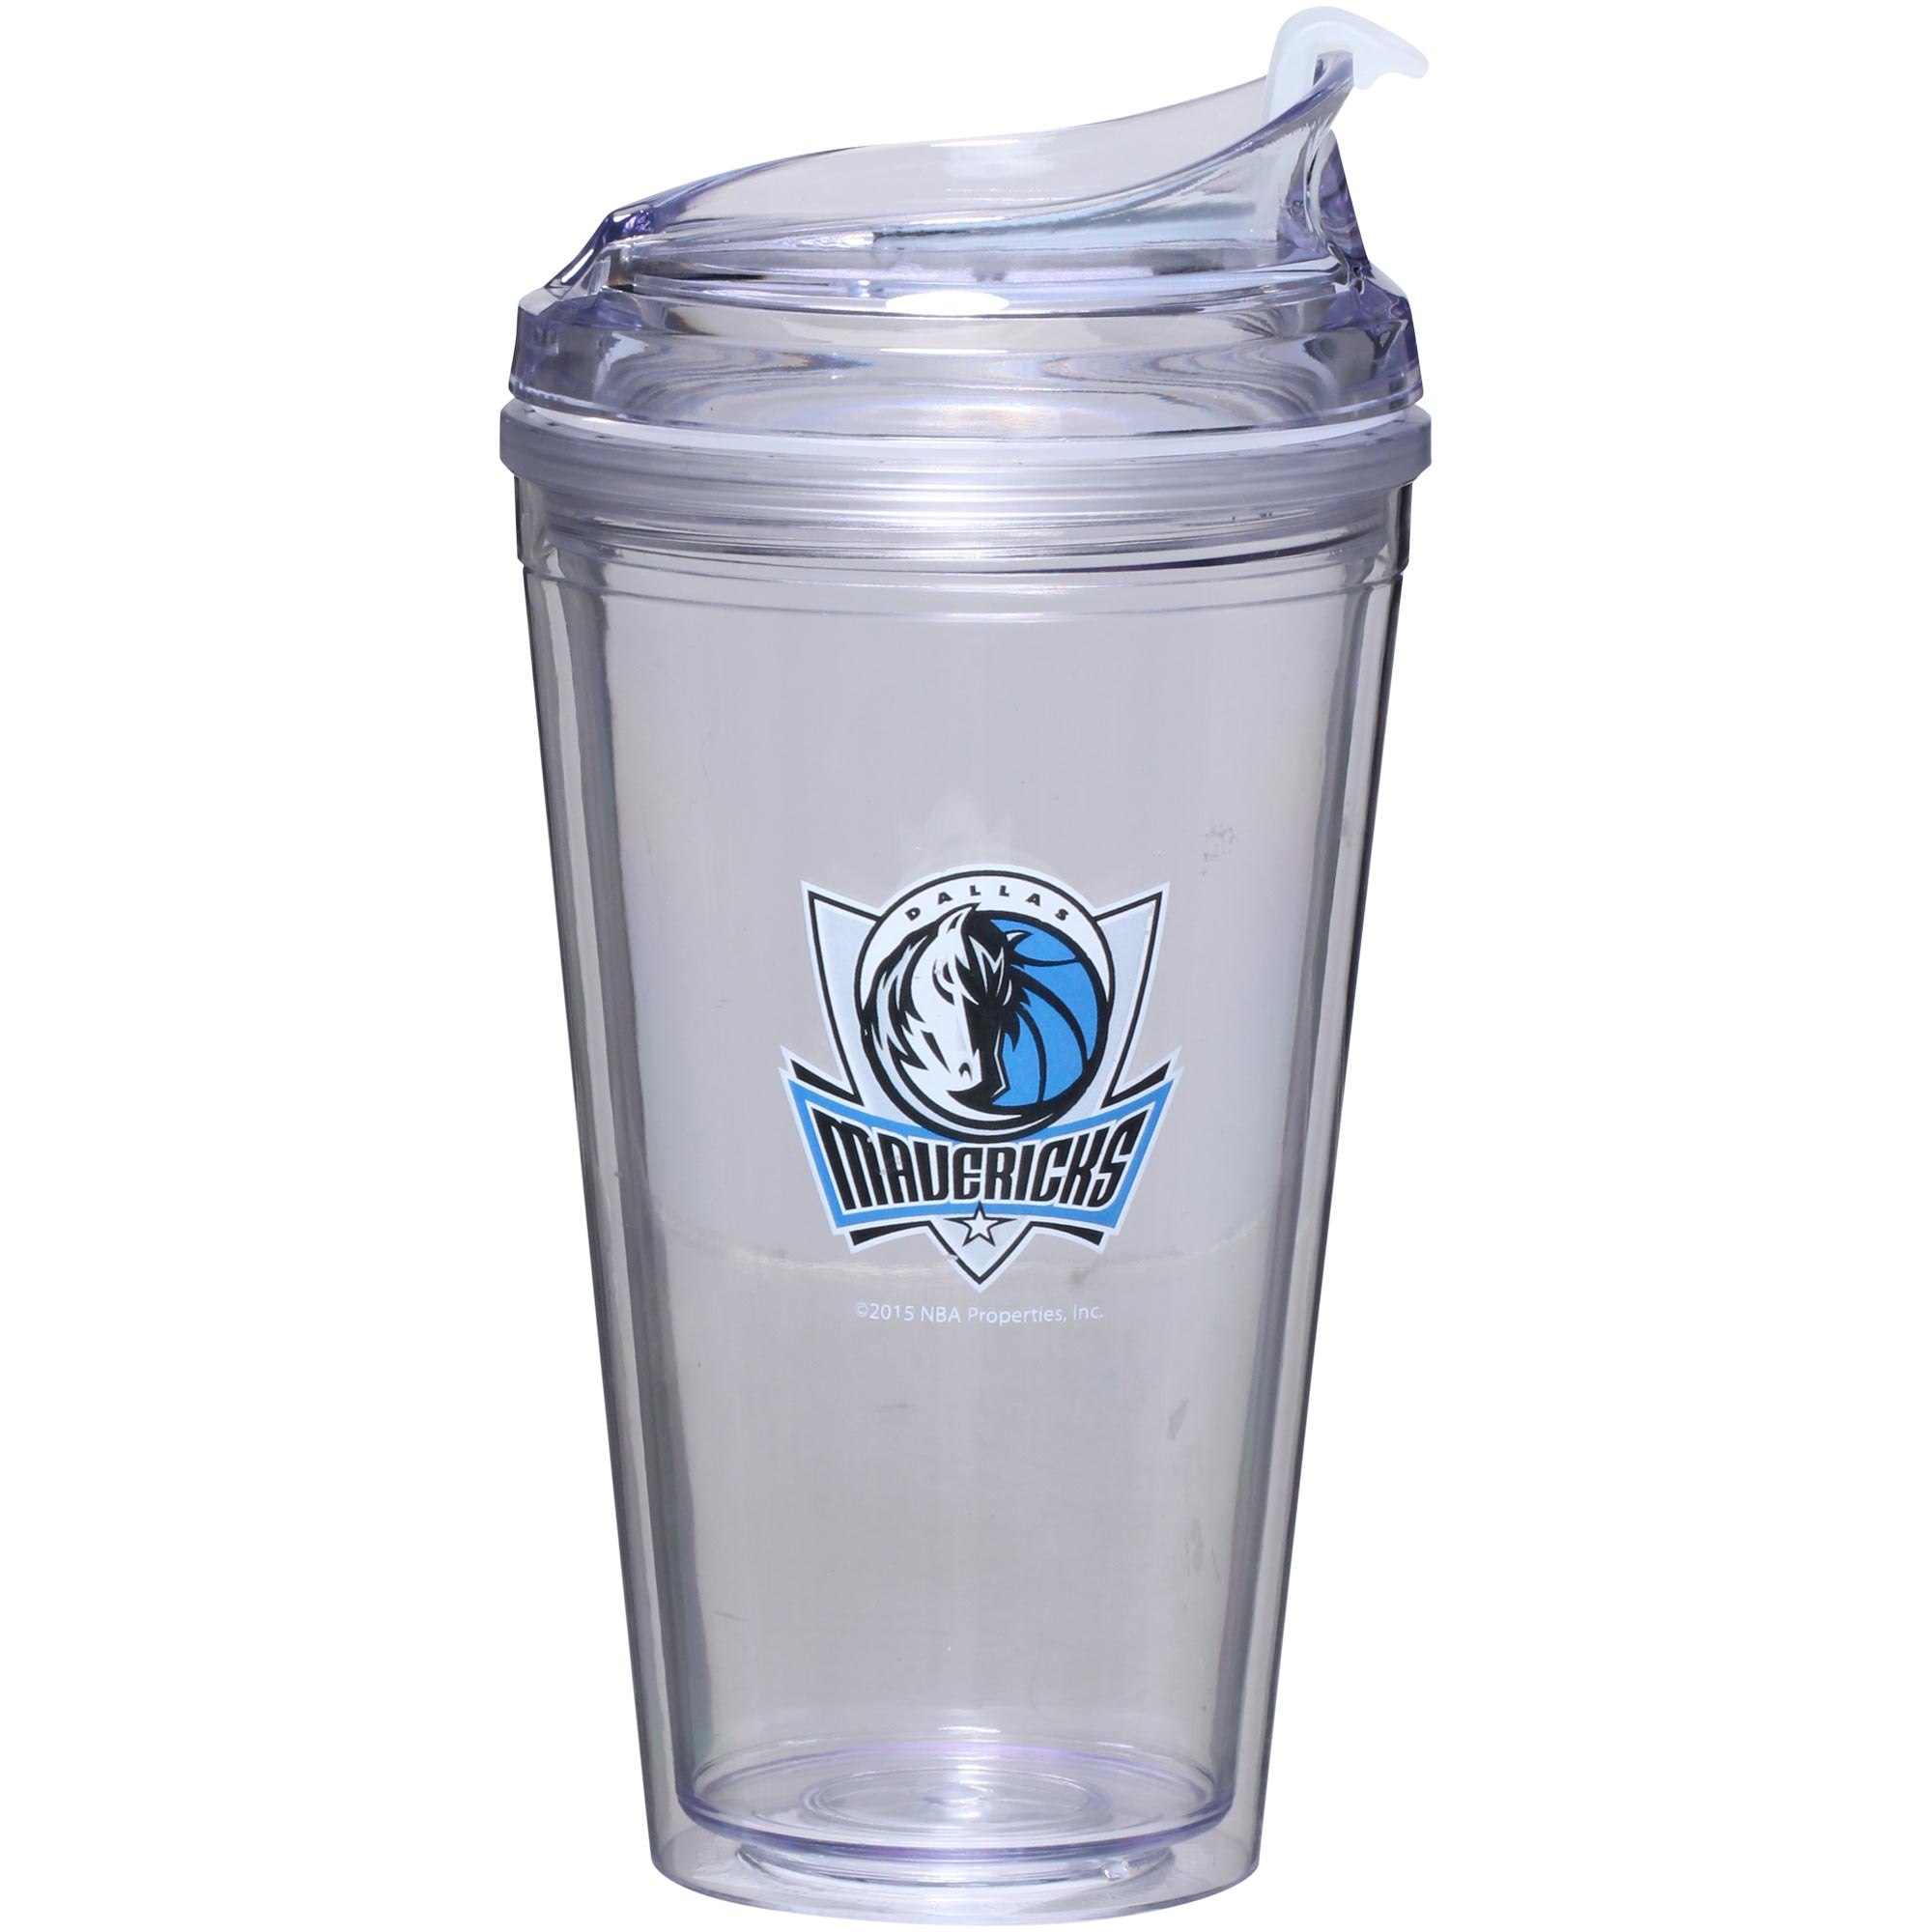 Dallas Mavericks 16oz. Marathon Tumbler - No Size